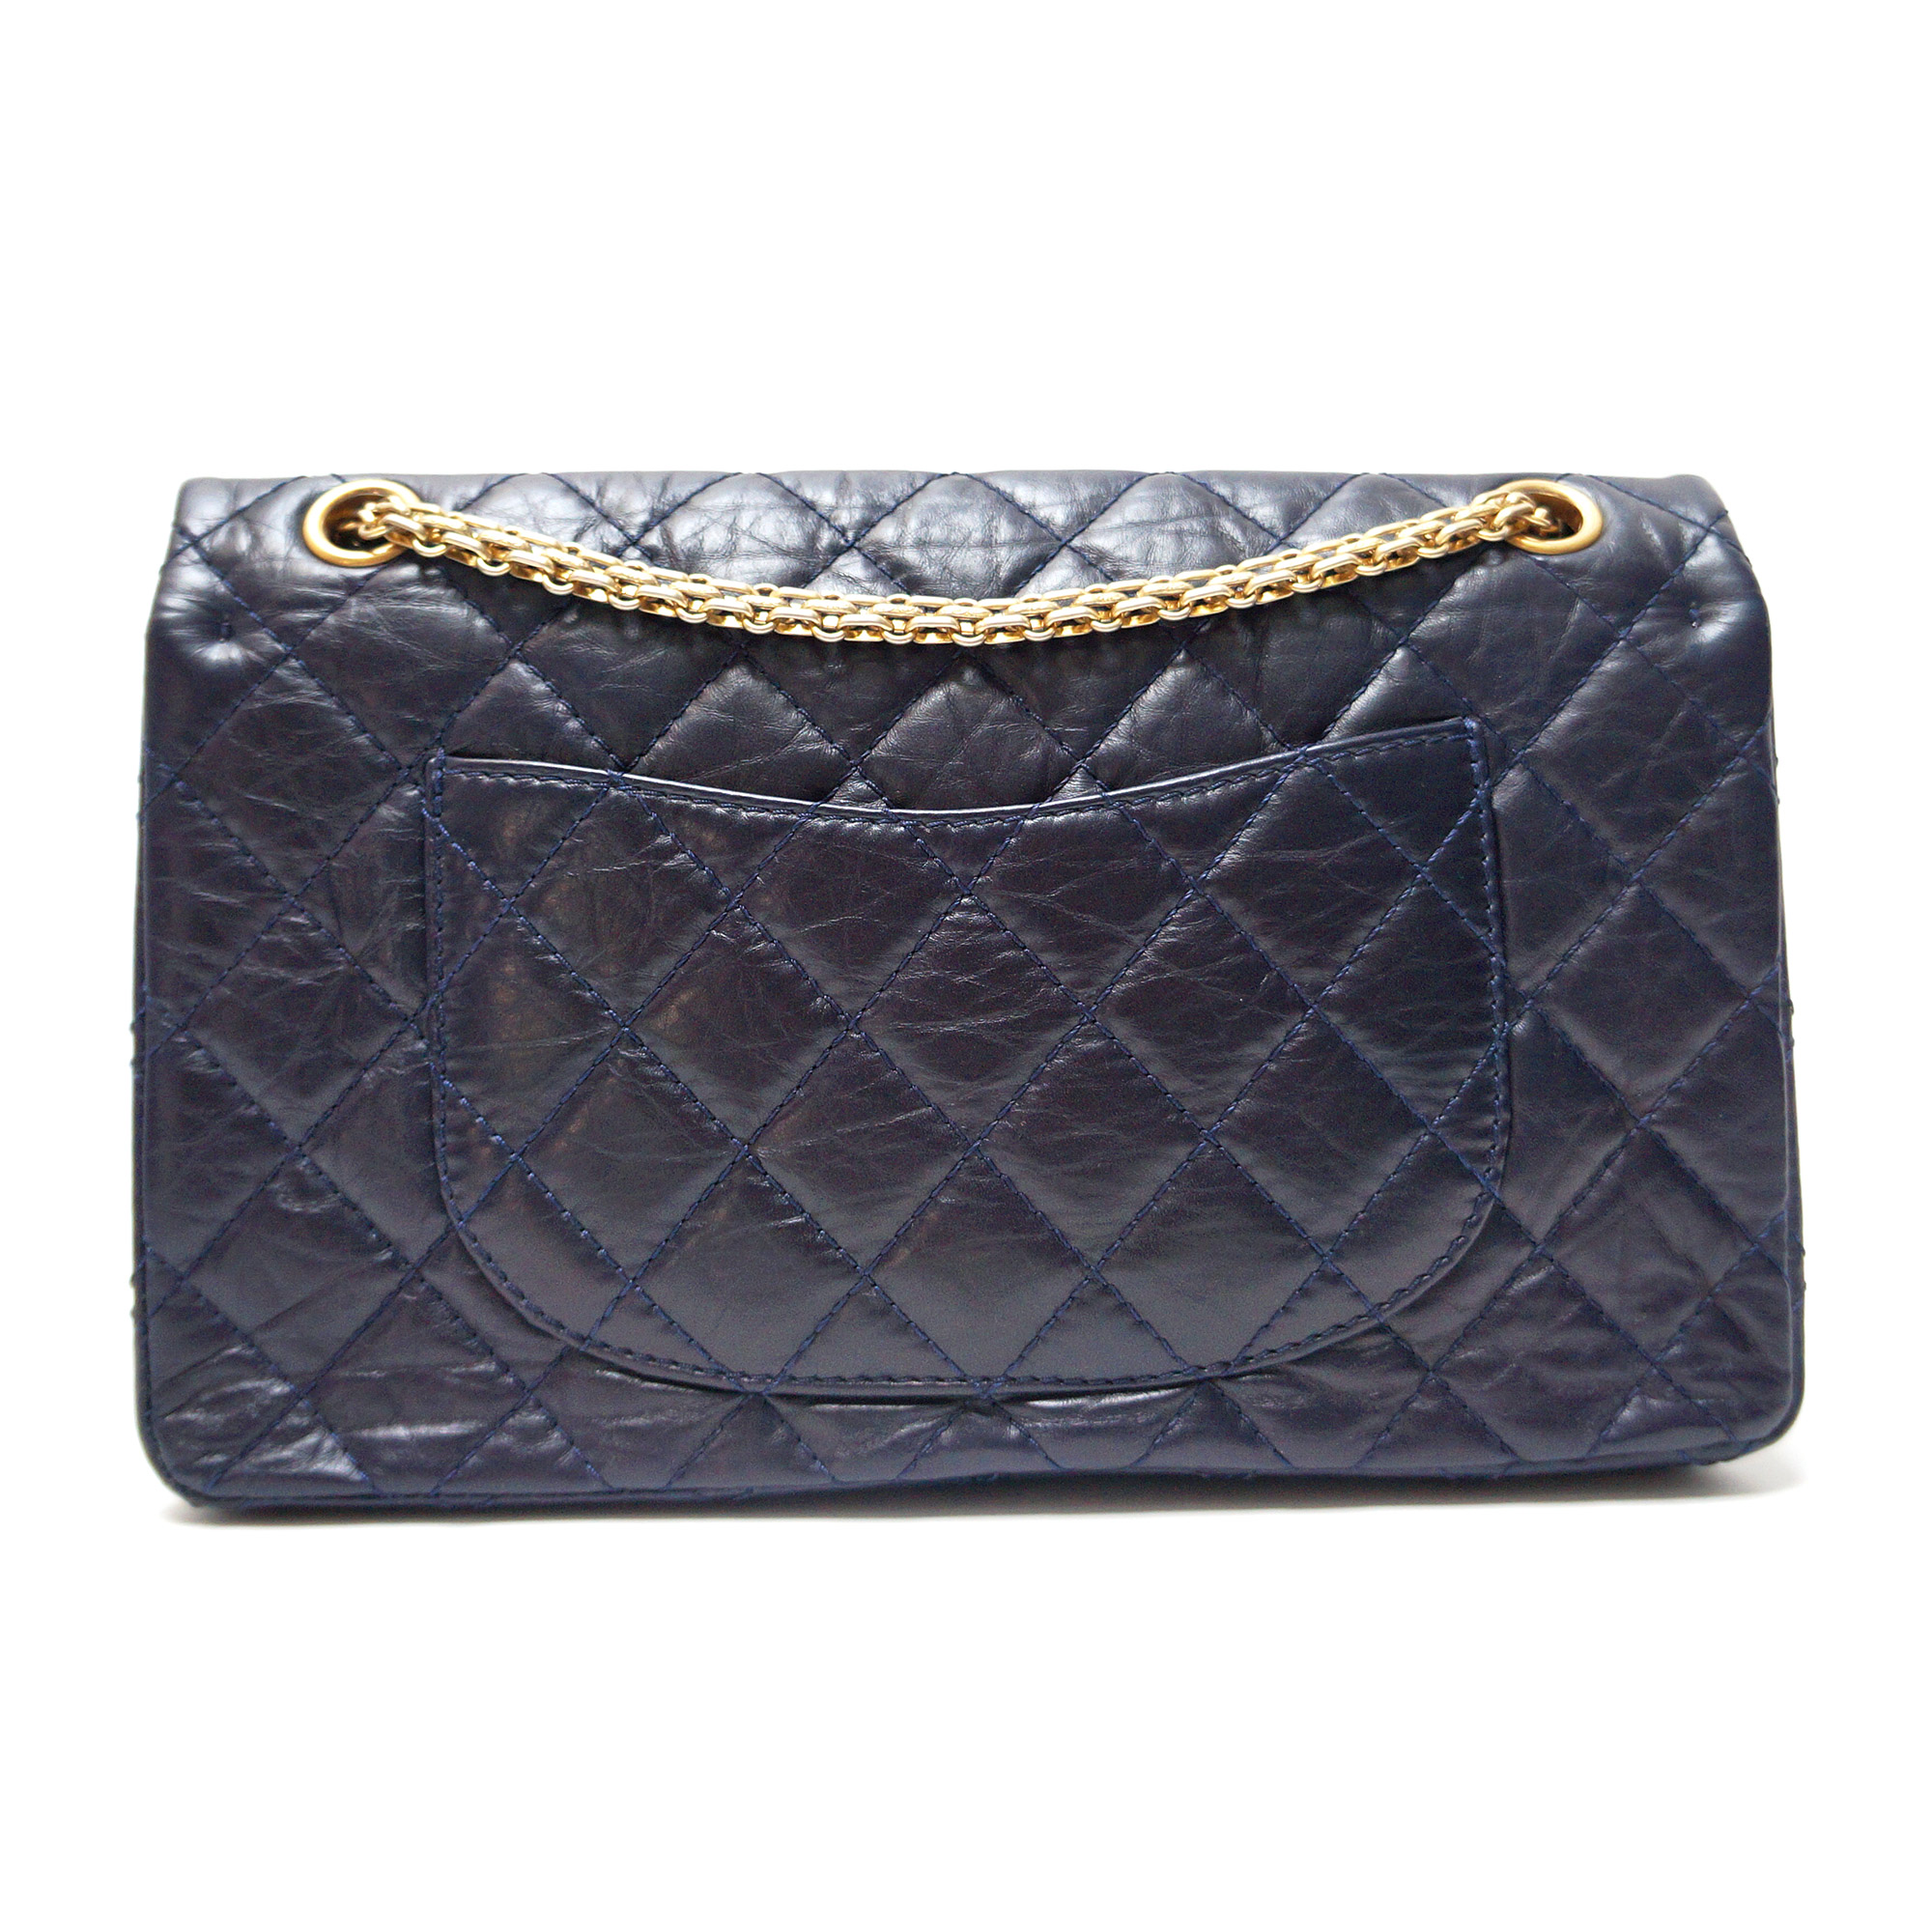 a1cbe0f5e11c Chanel 2.55 Reissue Flap Bag 226 Navy Aged Leather Gold Hardware ...